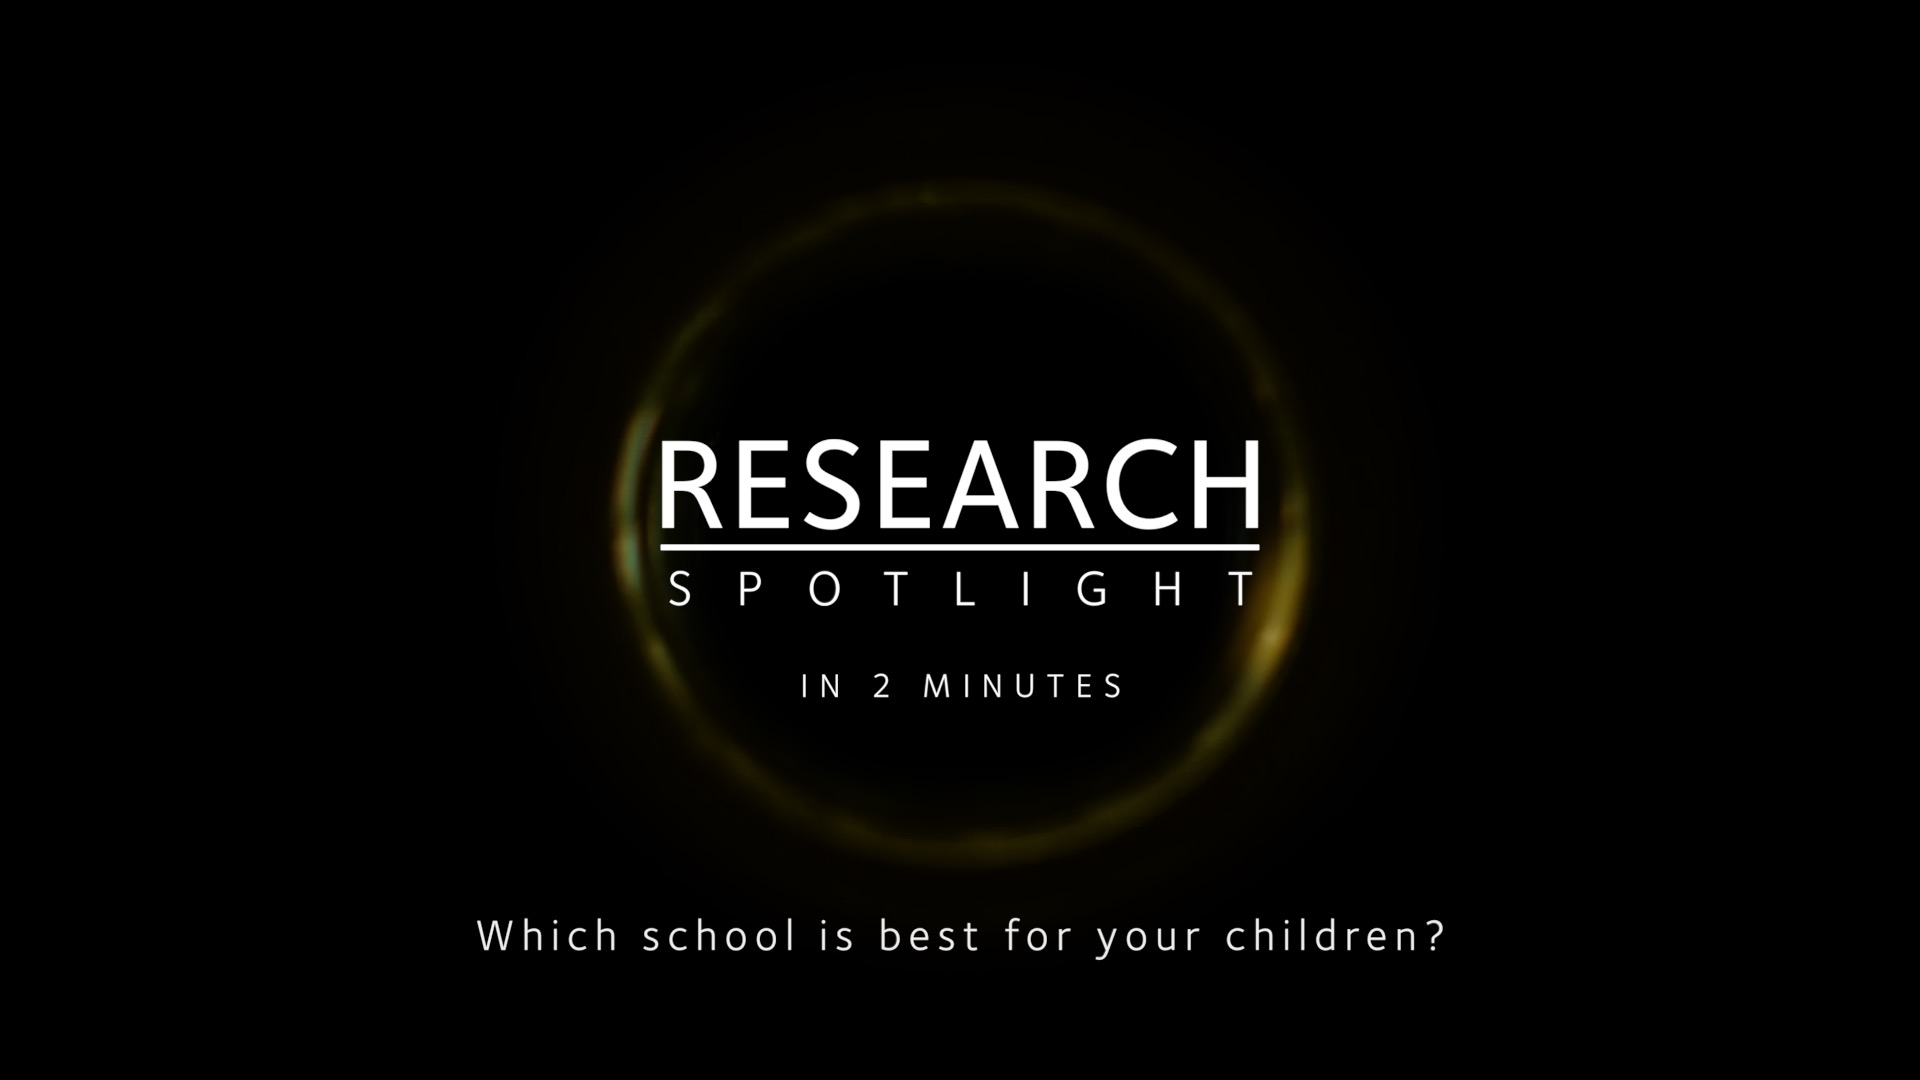 A screen capture from the Research Spotlight video. The text 'Research Spotlight in 2 minutes: Which school is best for your children?'